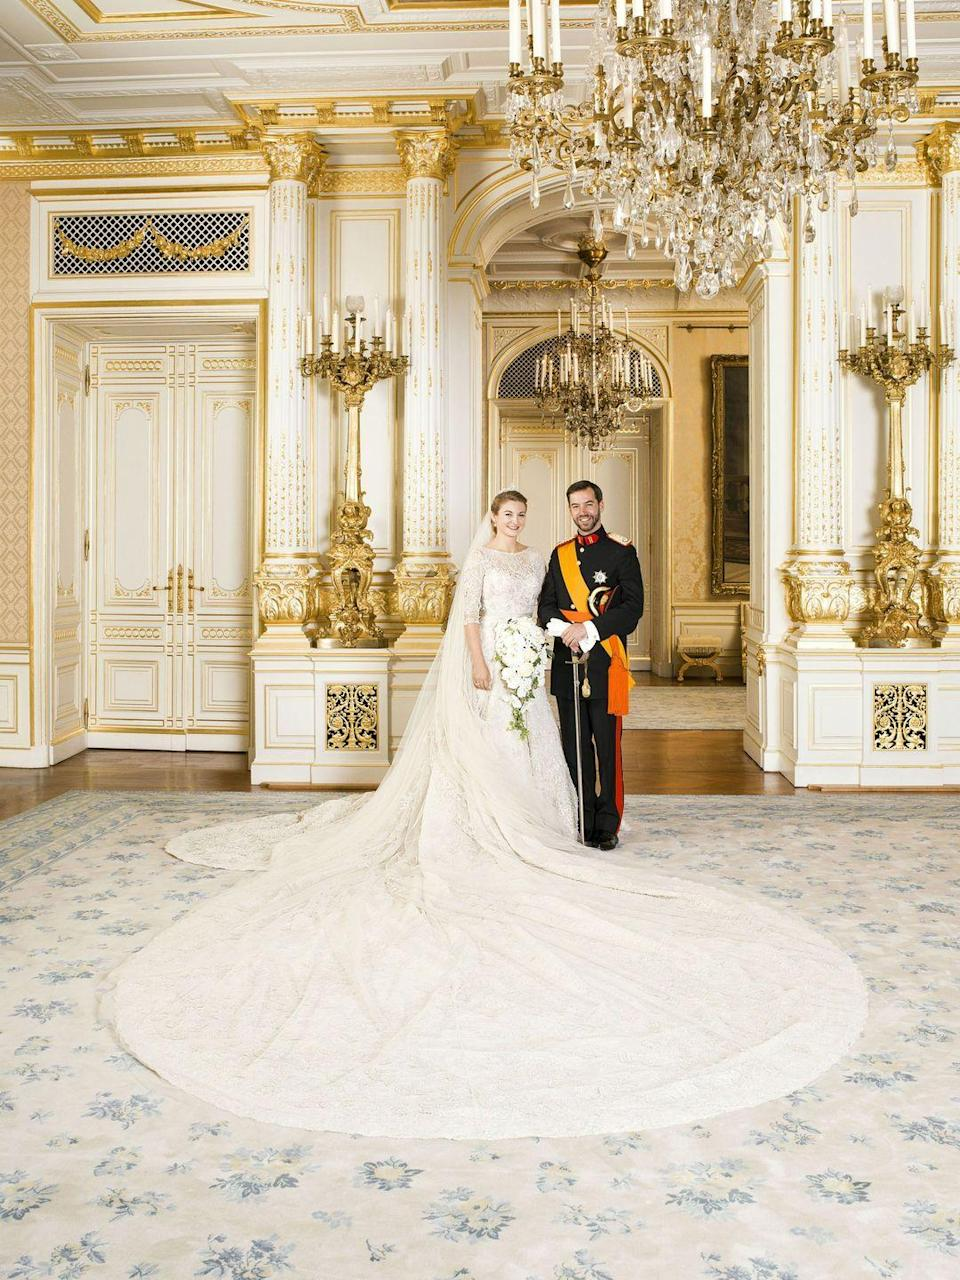 <p>For her 500,000 euro wedding to the heir of Luxembourg's throne, the Belgian duchess wore an ivory Elie Saab gown with structured tailoring and elaborate detailing. The dress featured three-quarter length sleeves, a silk tulle veil, and a 13-foot long train.</p>